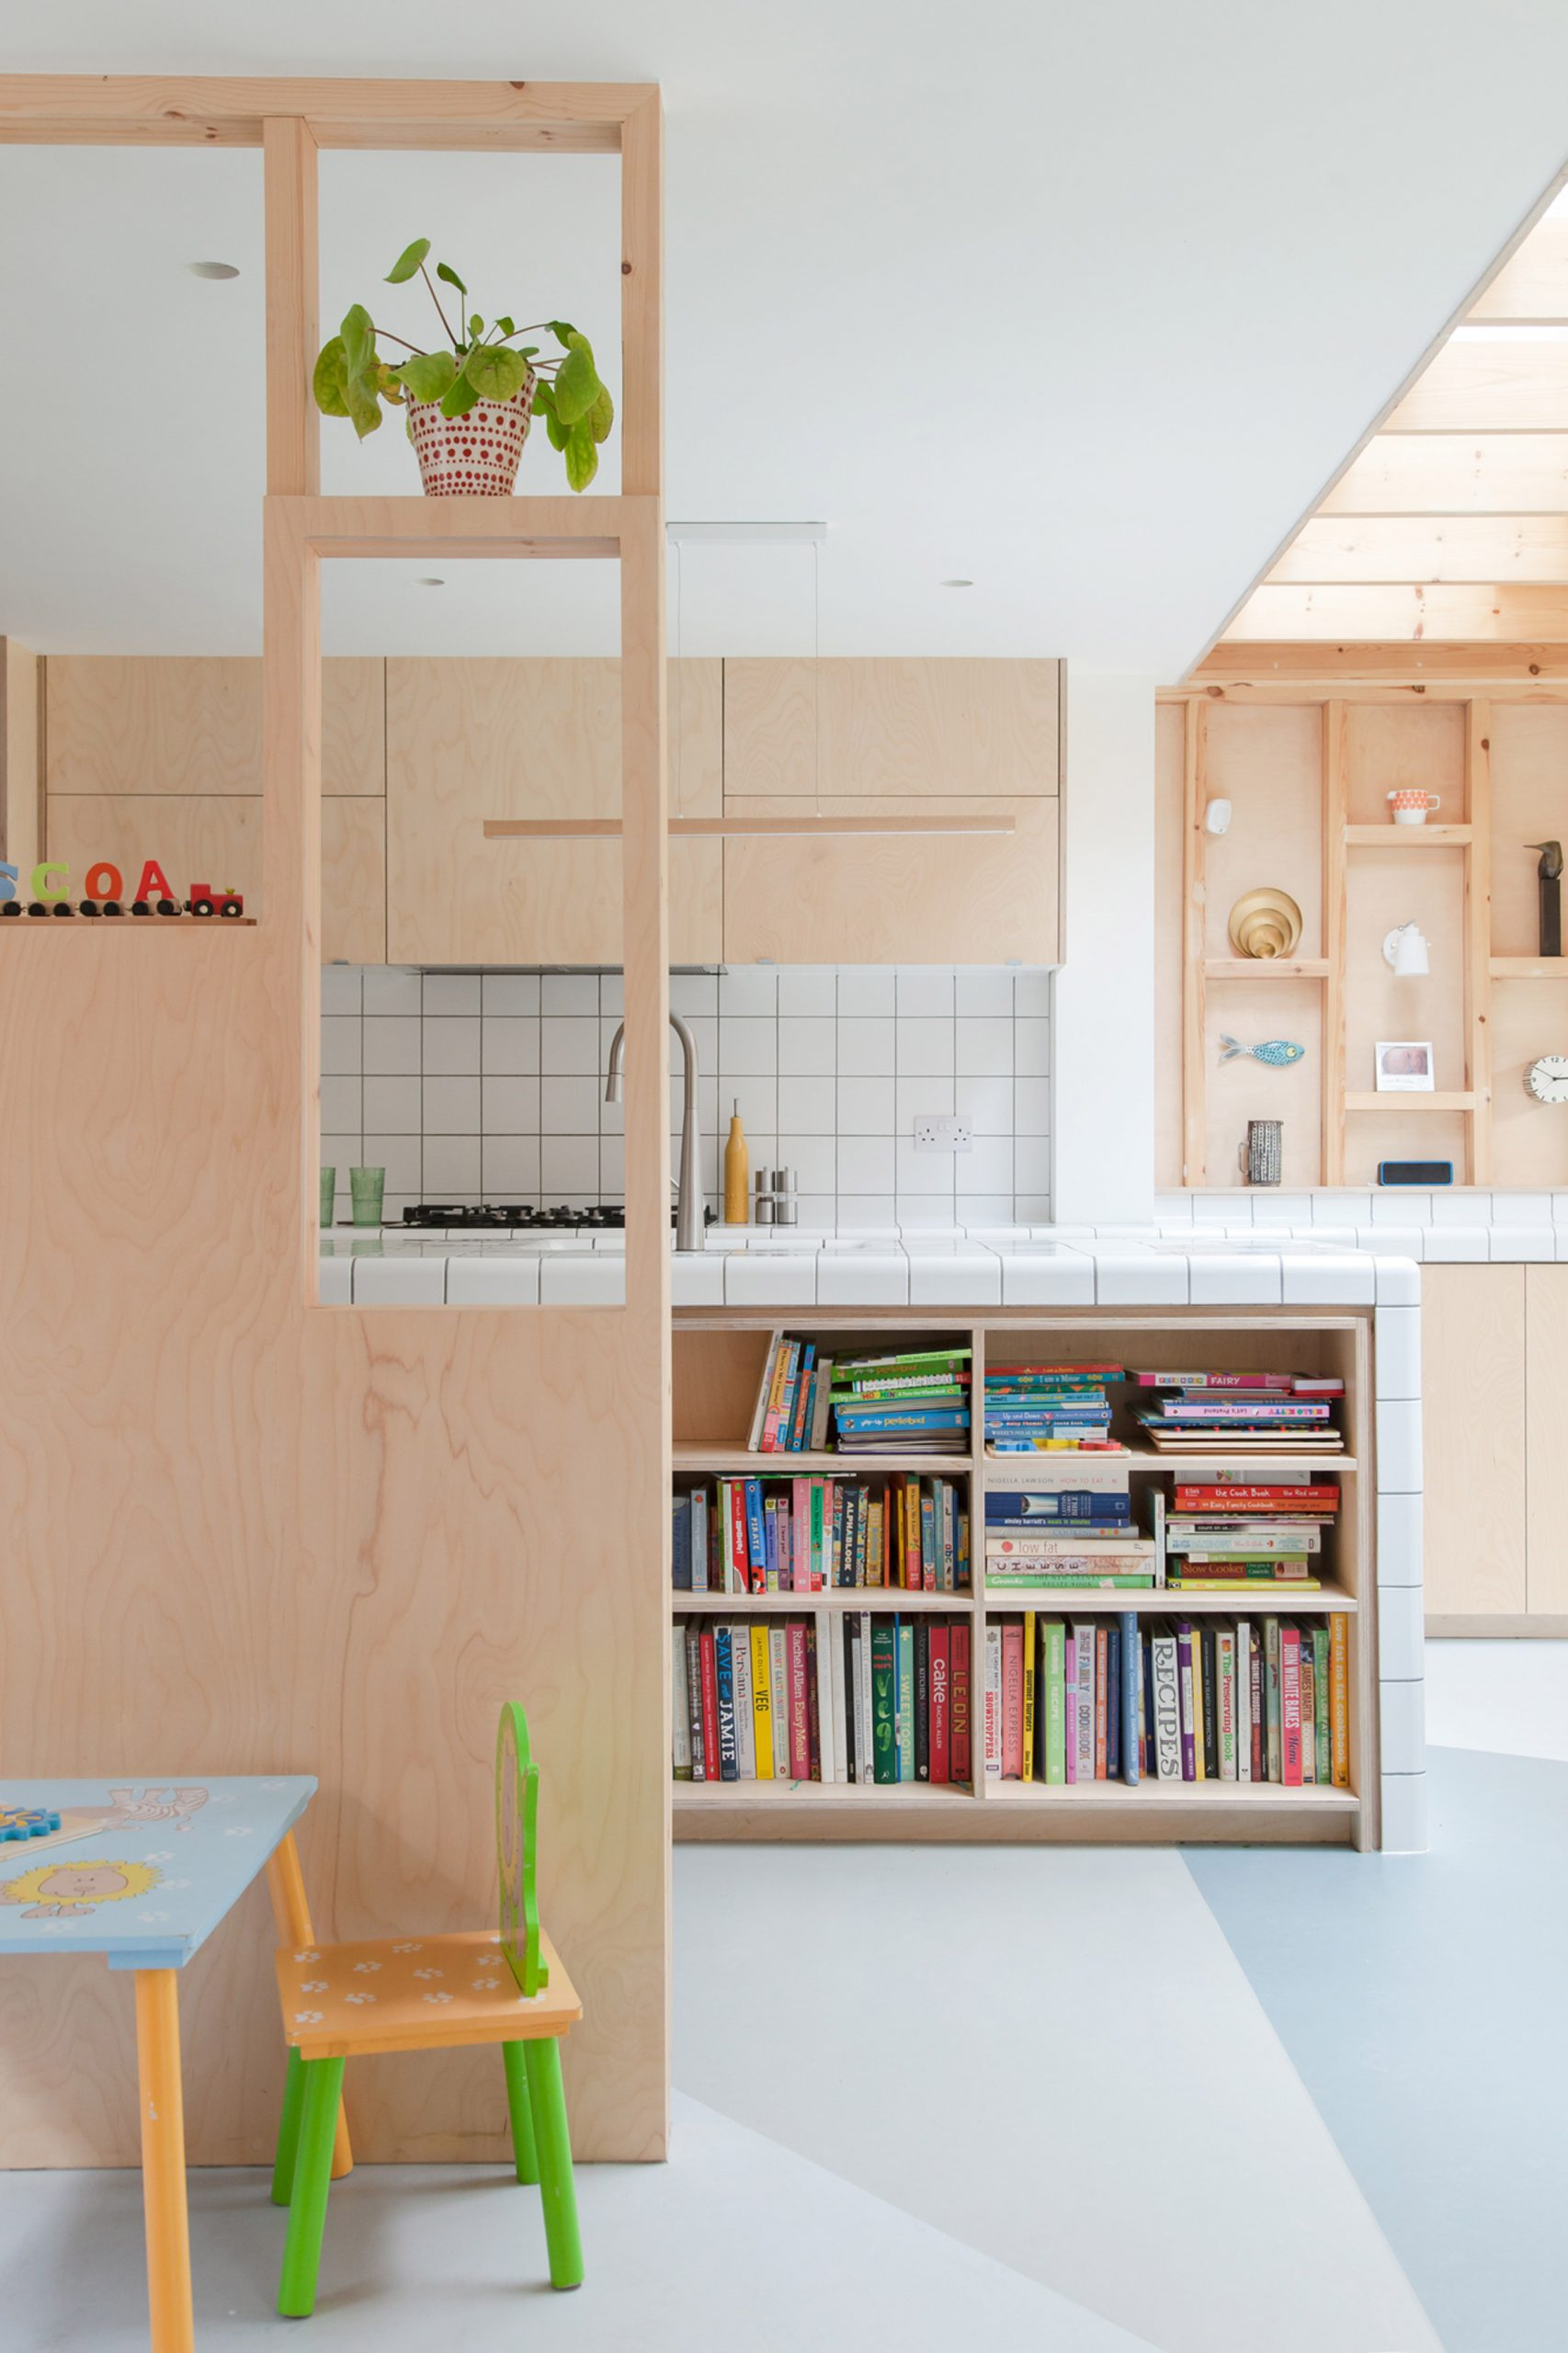 A kitchen with timber walls and cabinets